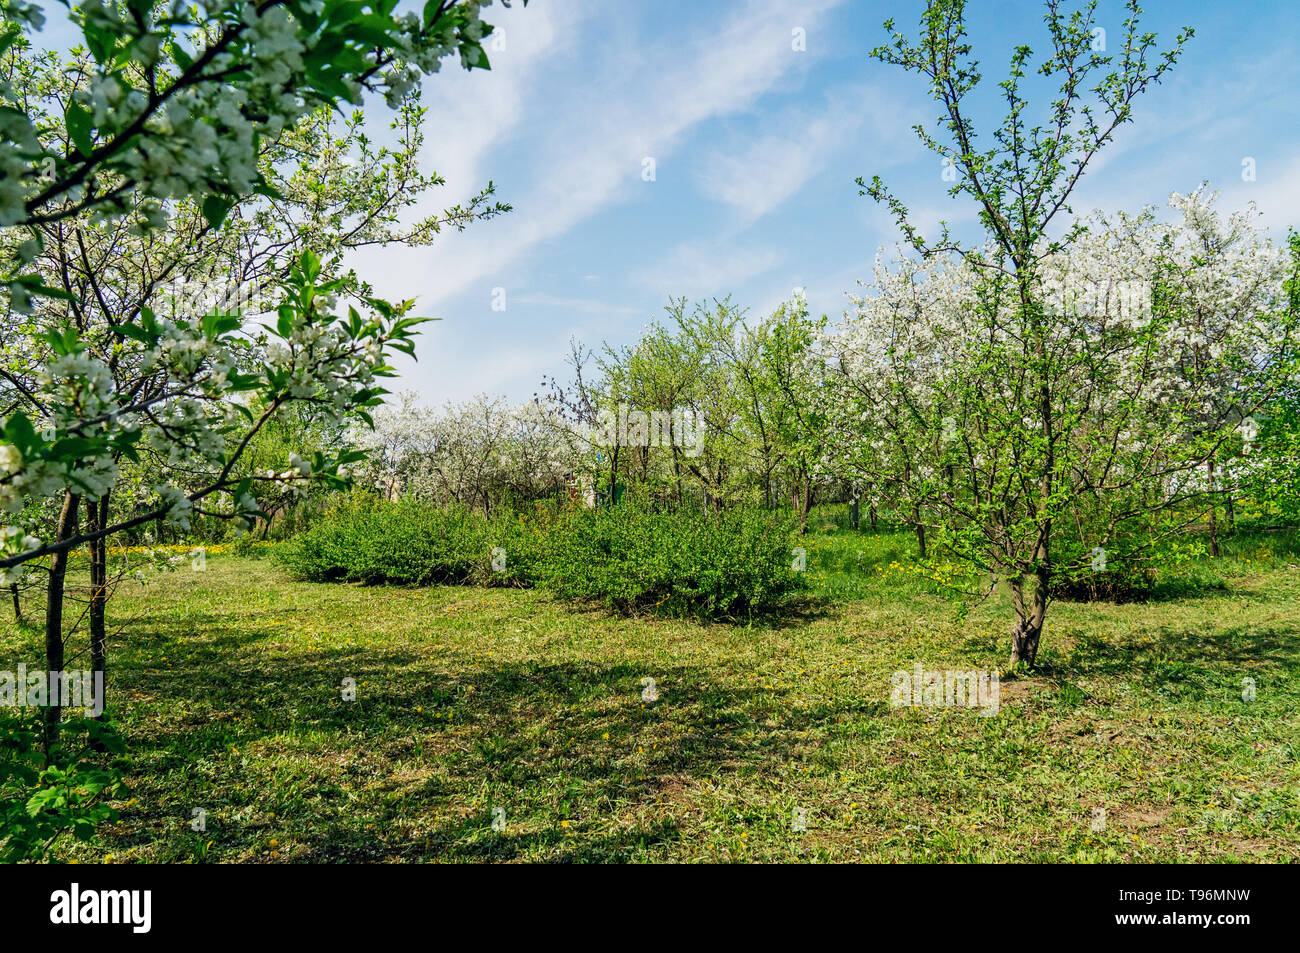 Ornamental garden with majestically blossoming large cherry trees and Apple trees on a fresh green lawn. - Stock Image